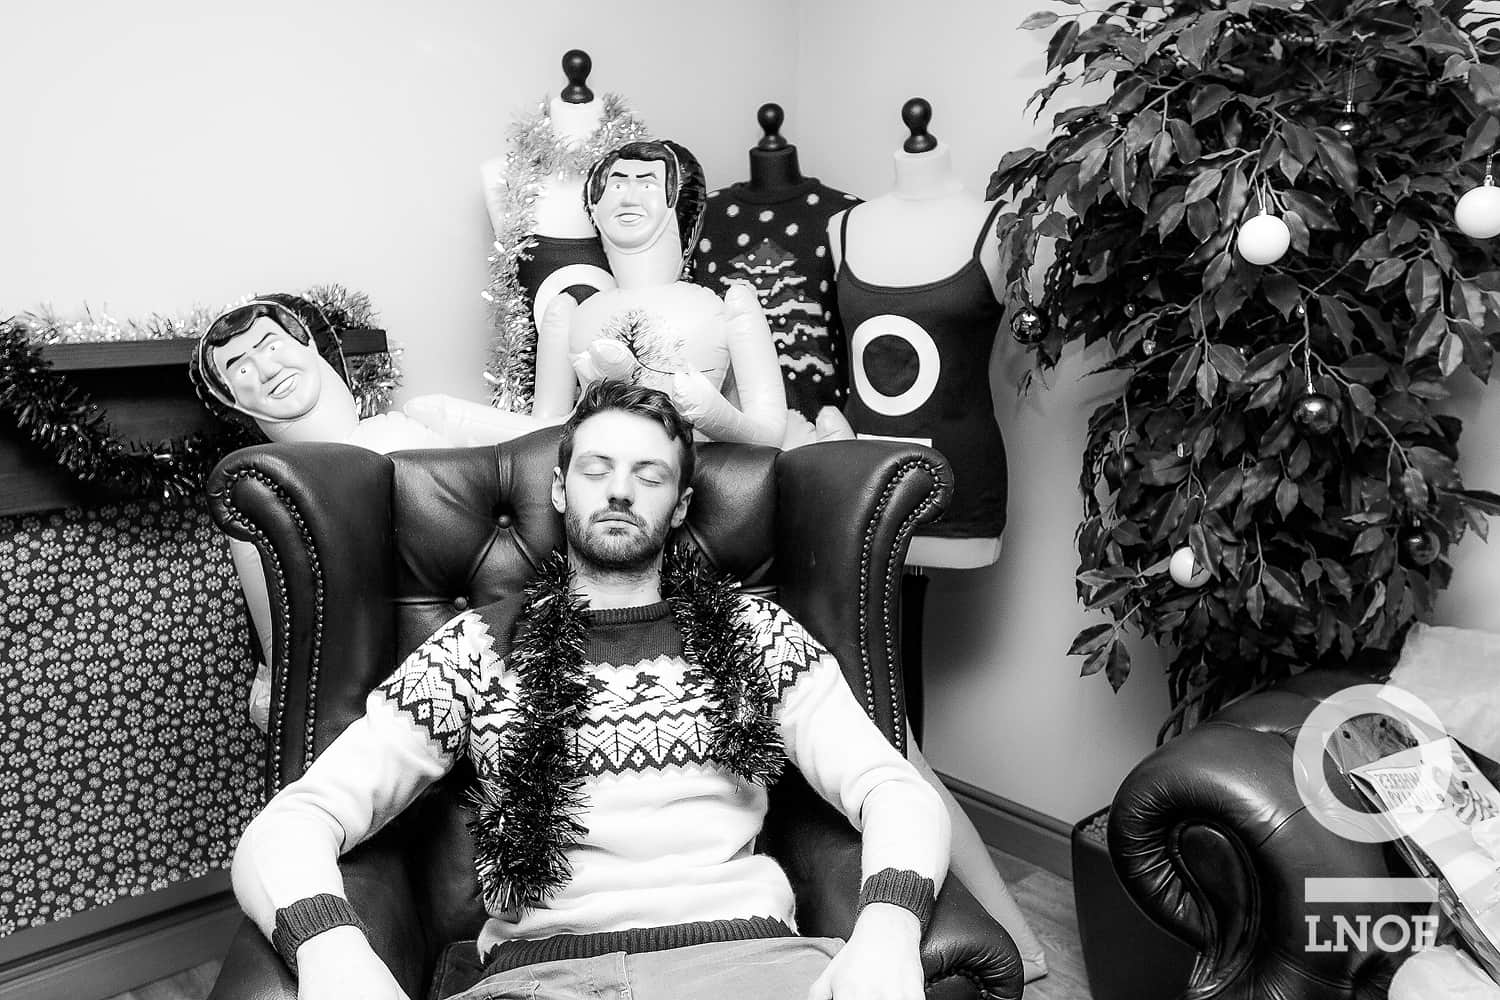 James, part of our digital team, has a nap after recording all the scenes for our 12 days of Christmas video